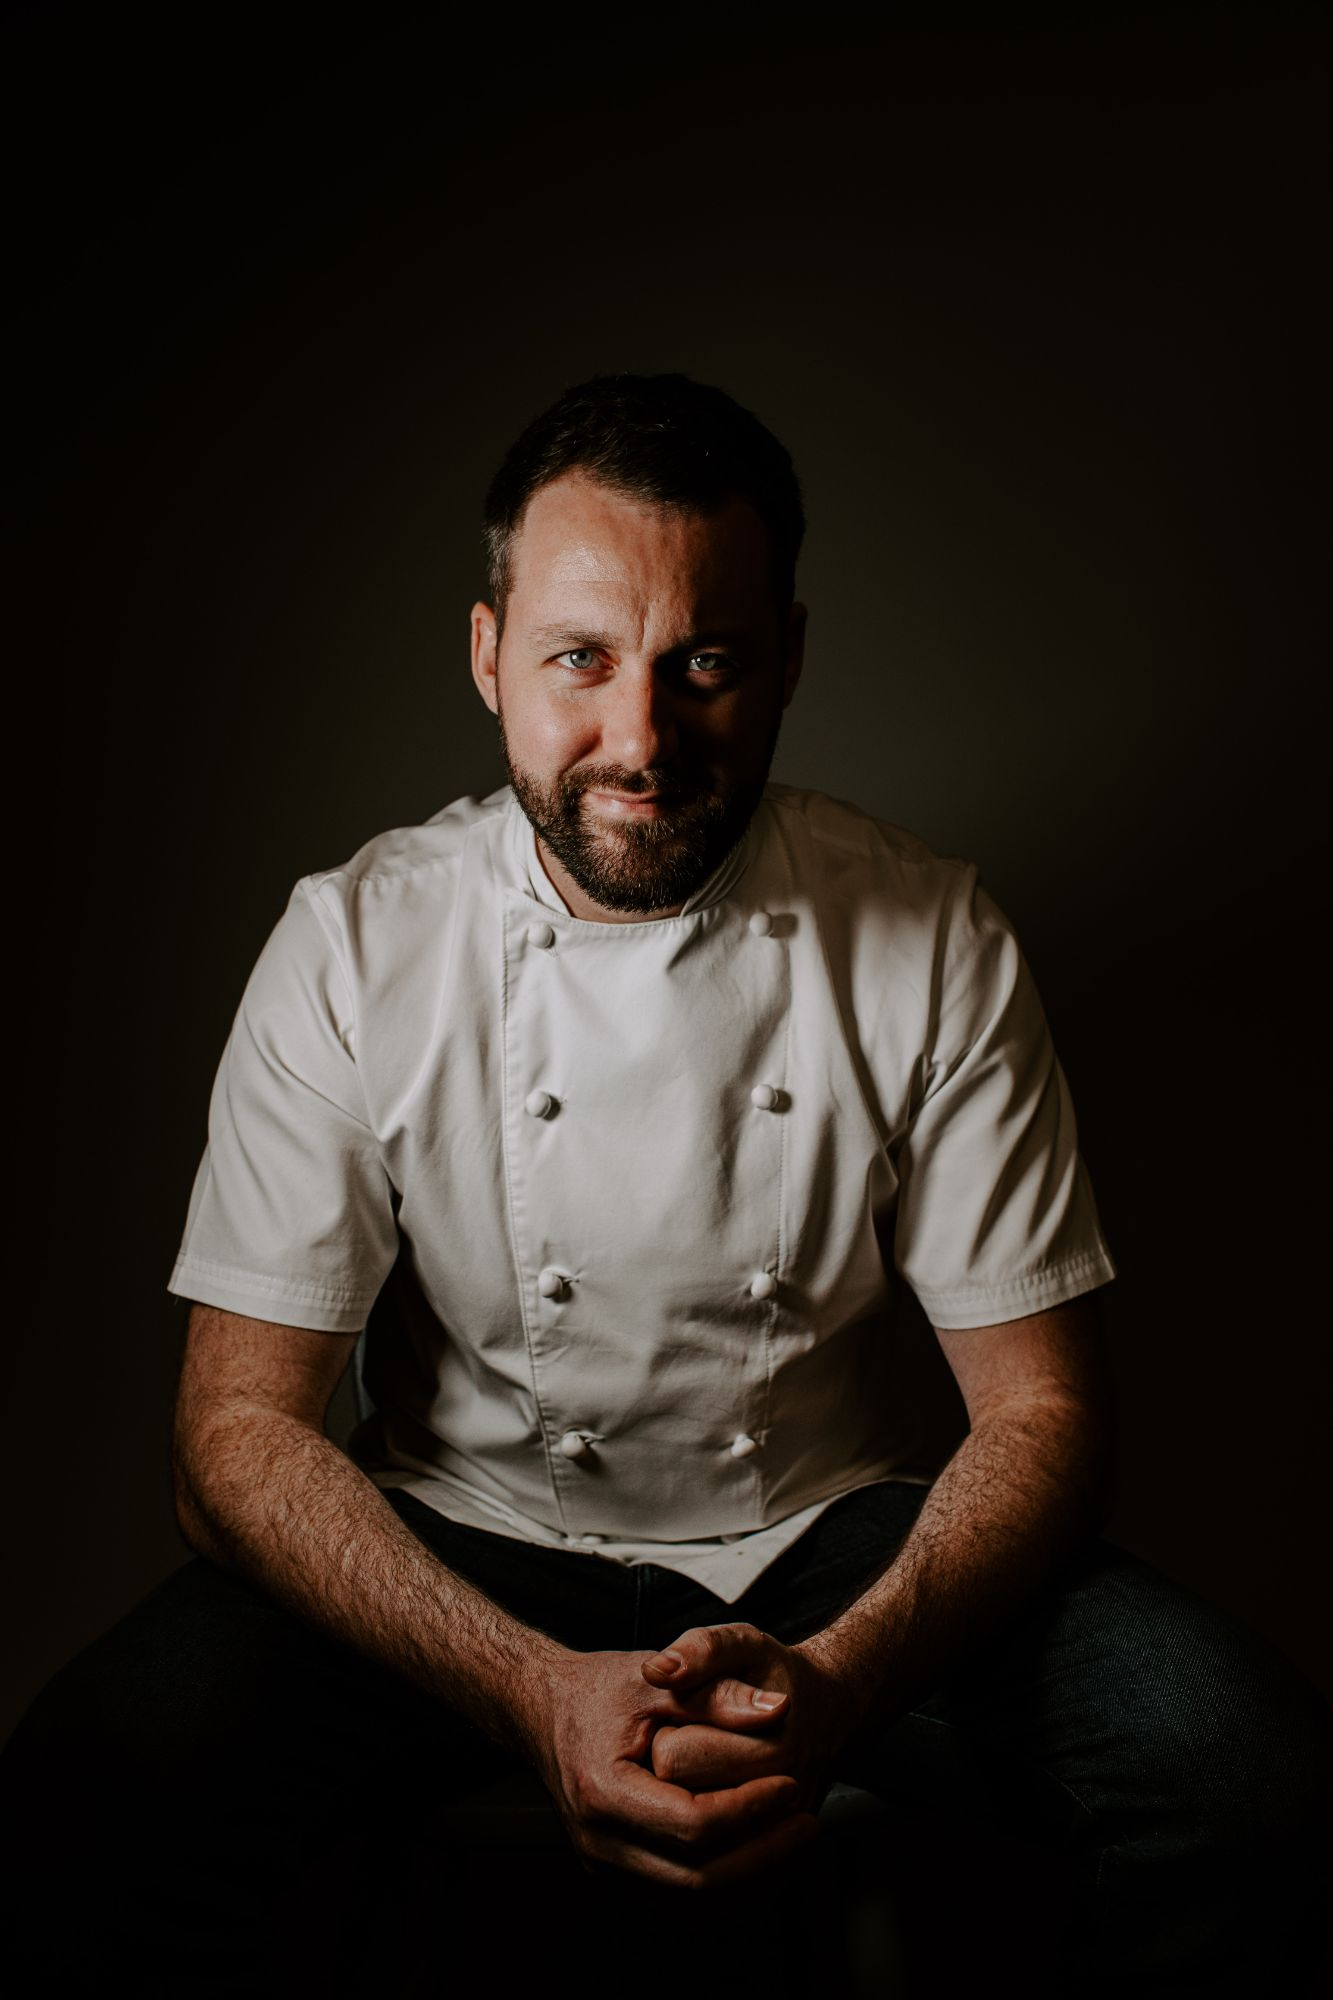 UK Chef photographer